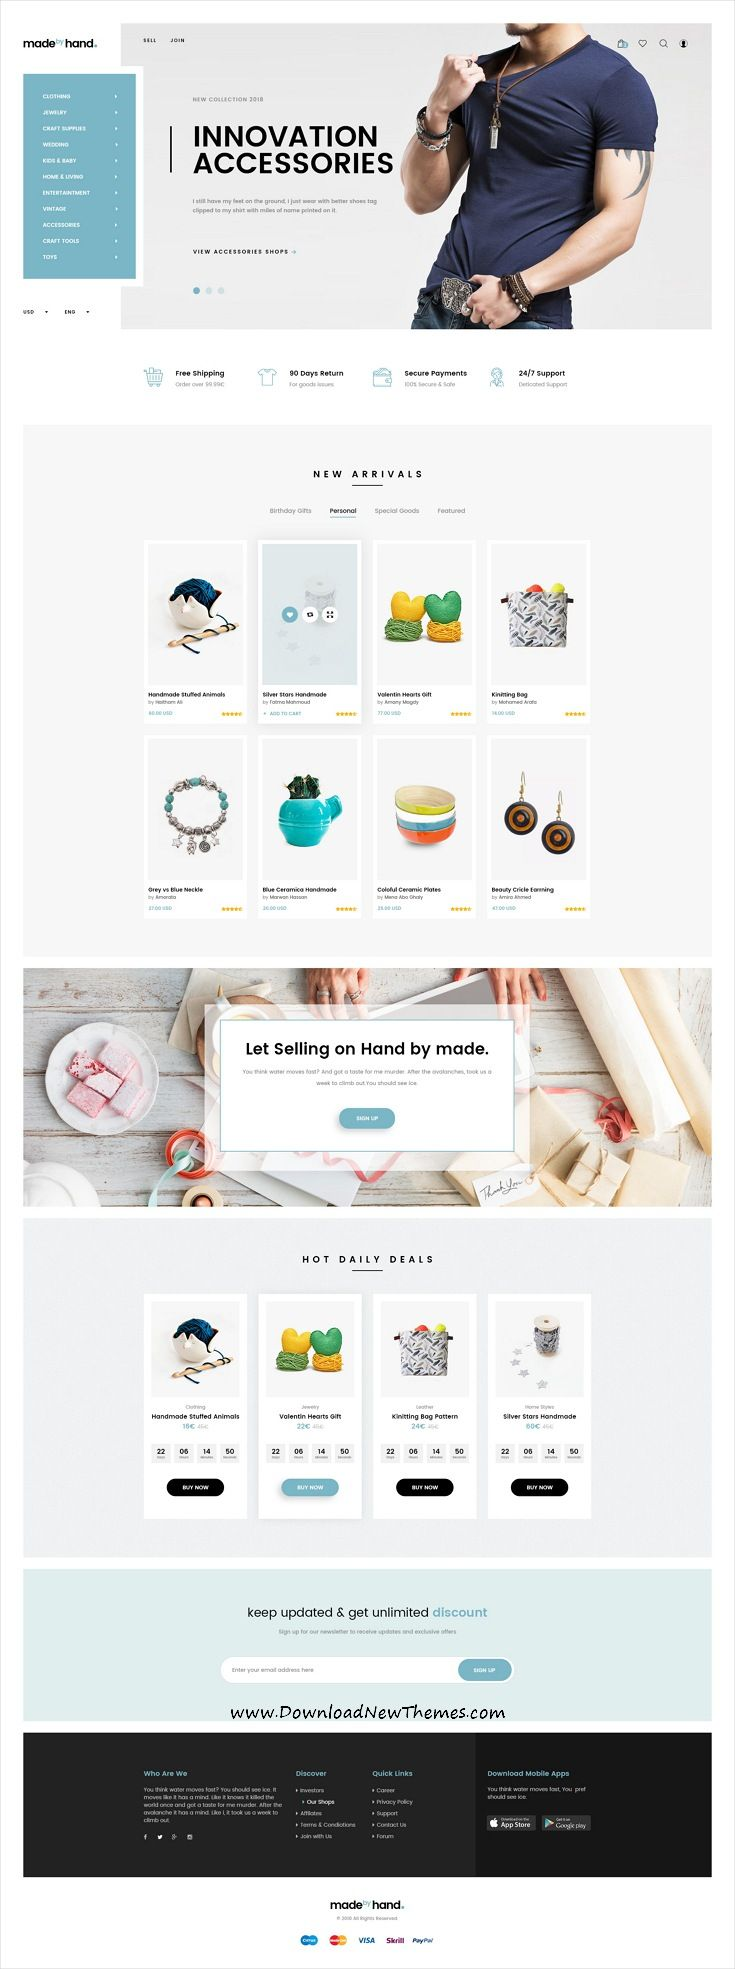 Made By Hand Is A Clean And Modern Design Psdthemes For Handmade Crafts And Gift Store Eco Ecommerce Web Design Ecommerce Website Design Web Layout Design